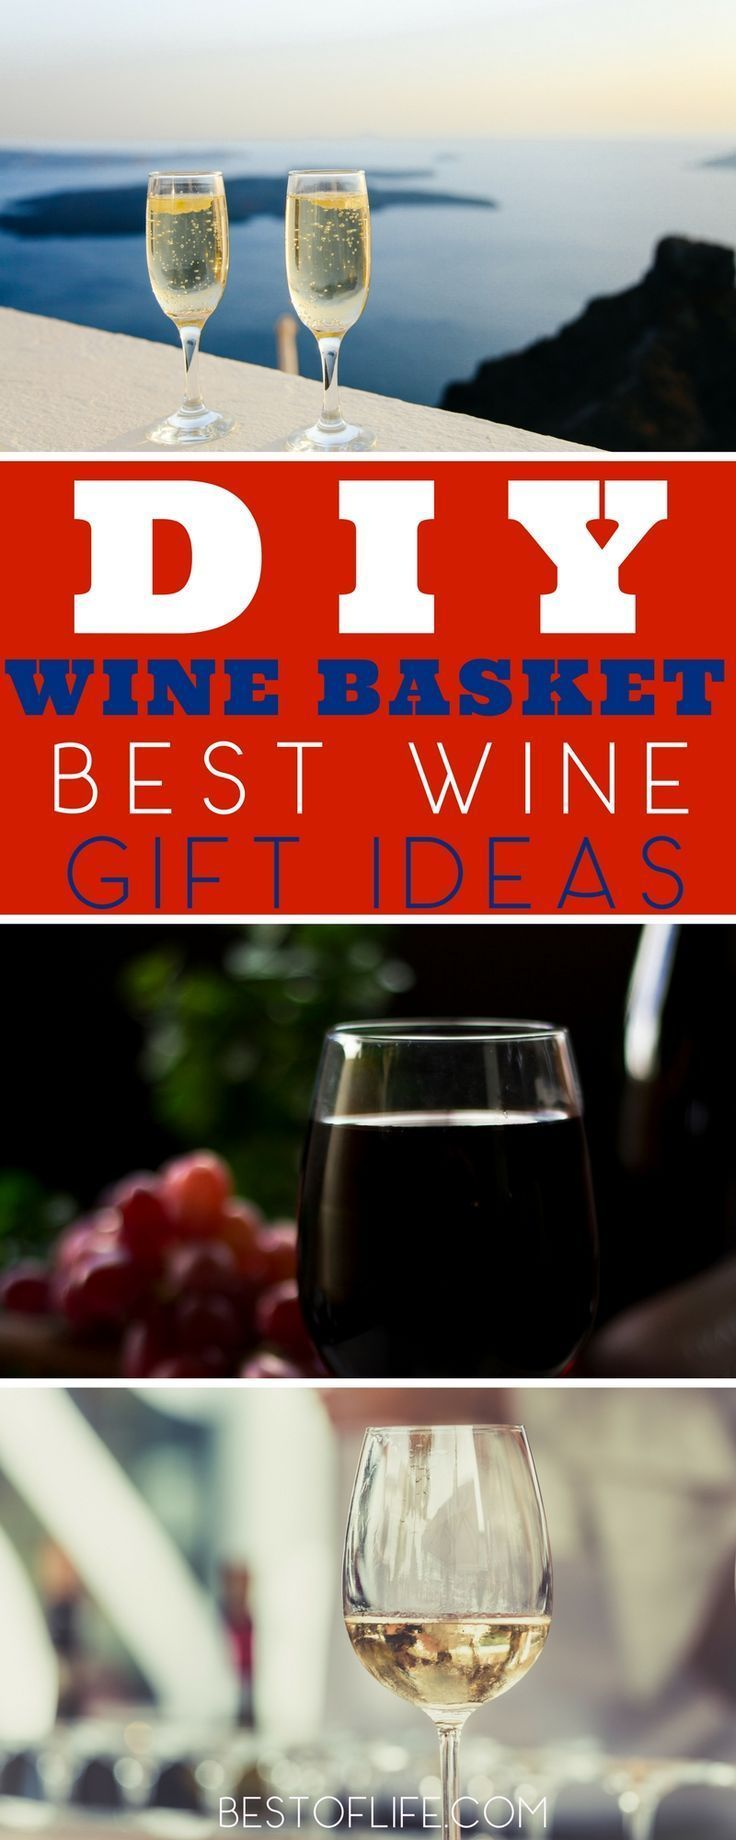 The Best Wine Gifts Are Perfect For Any Occasion These Are Perfect Anytime Gifts To Give The Wine Lover In Your Life O Wine Baskets Wine Gifts Diy Gifts For Him